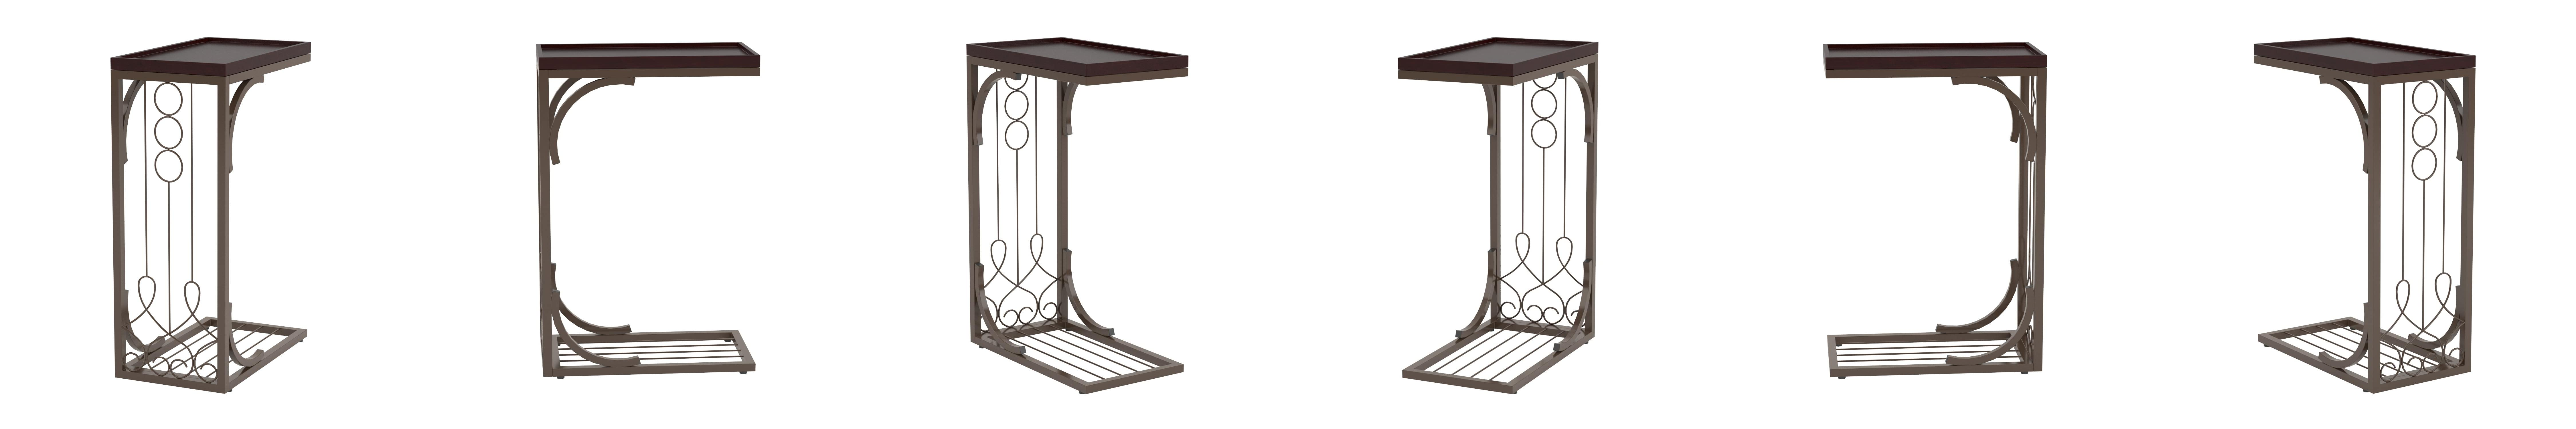 Amazon coaster 900280 snack table with burnished copper base amazon coaster 900280 snack table with burnished copper base brown kitchen dining geotapseo Gallery